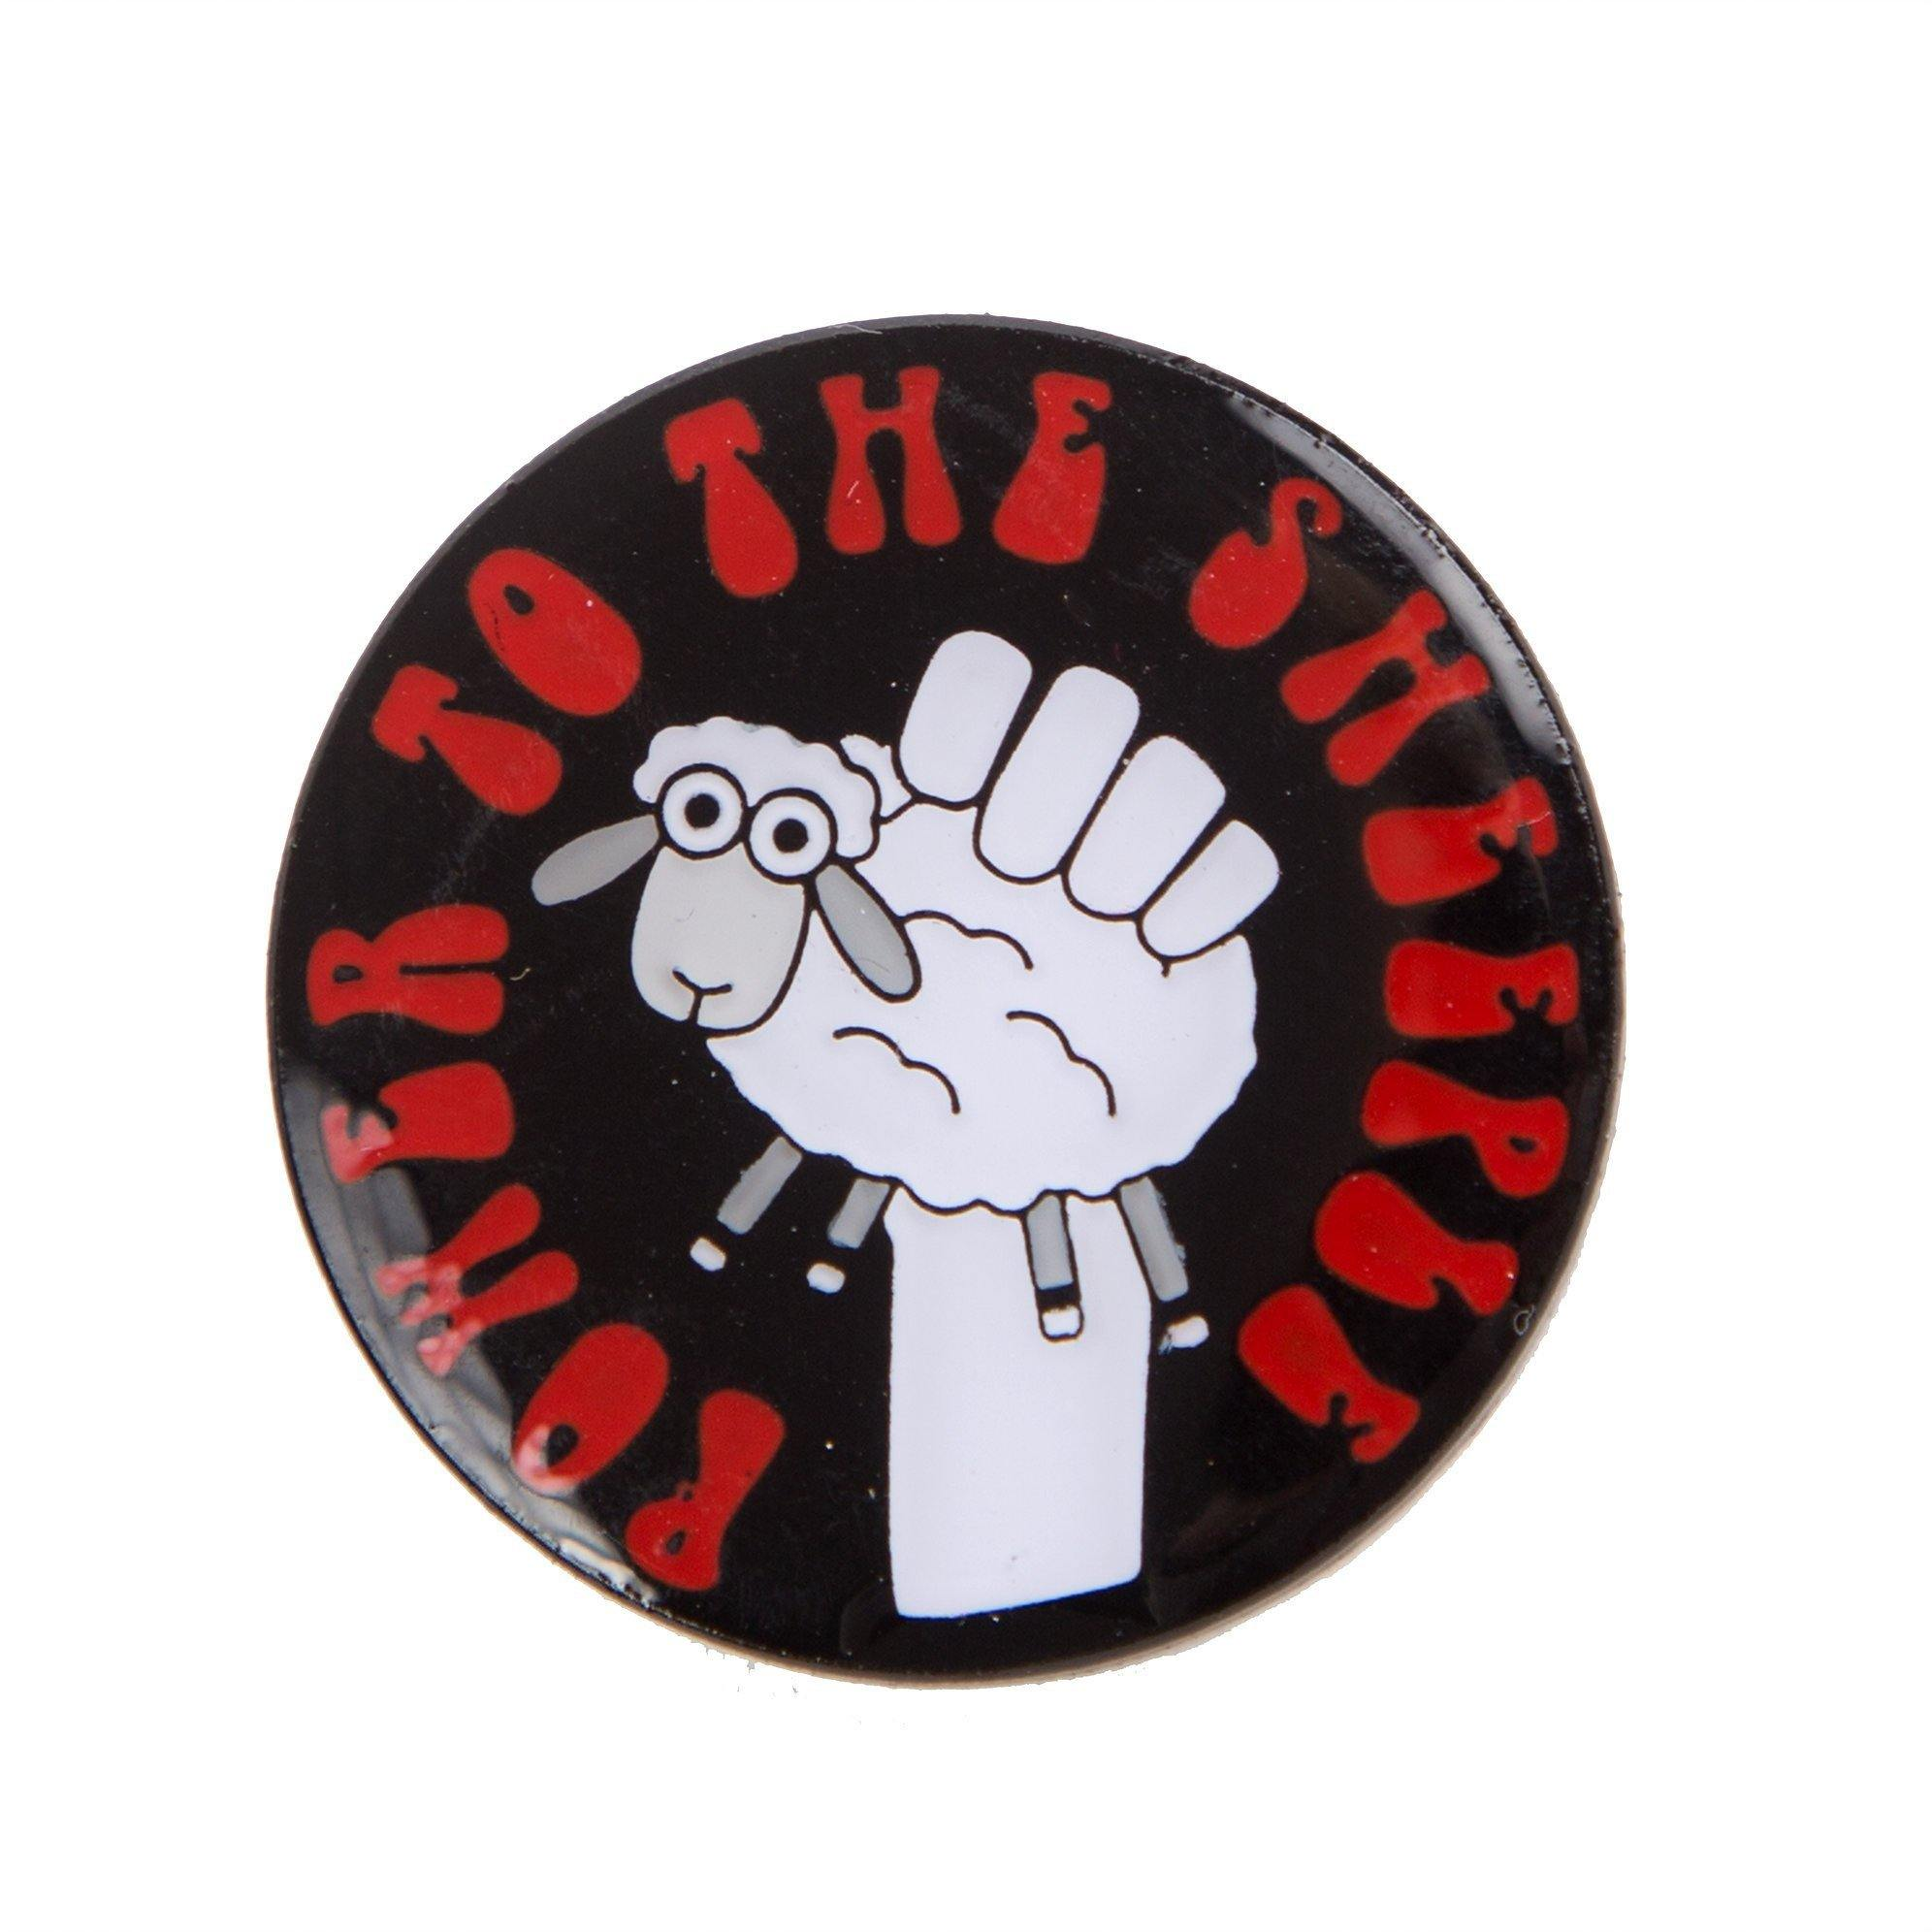 Power to the Sheeple Pin Badge Sue Stratford Pins & Needles